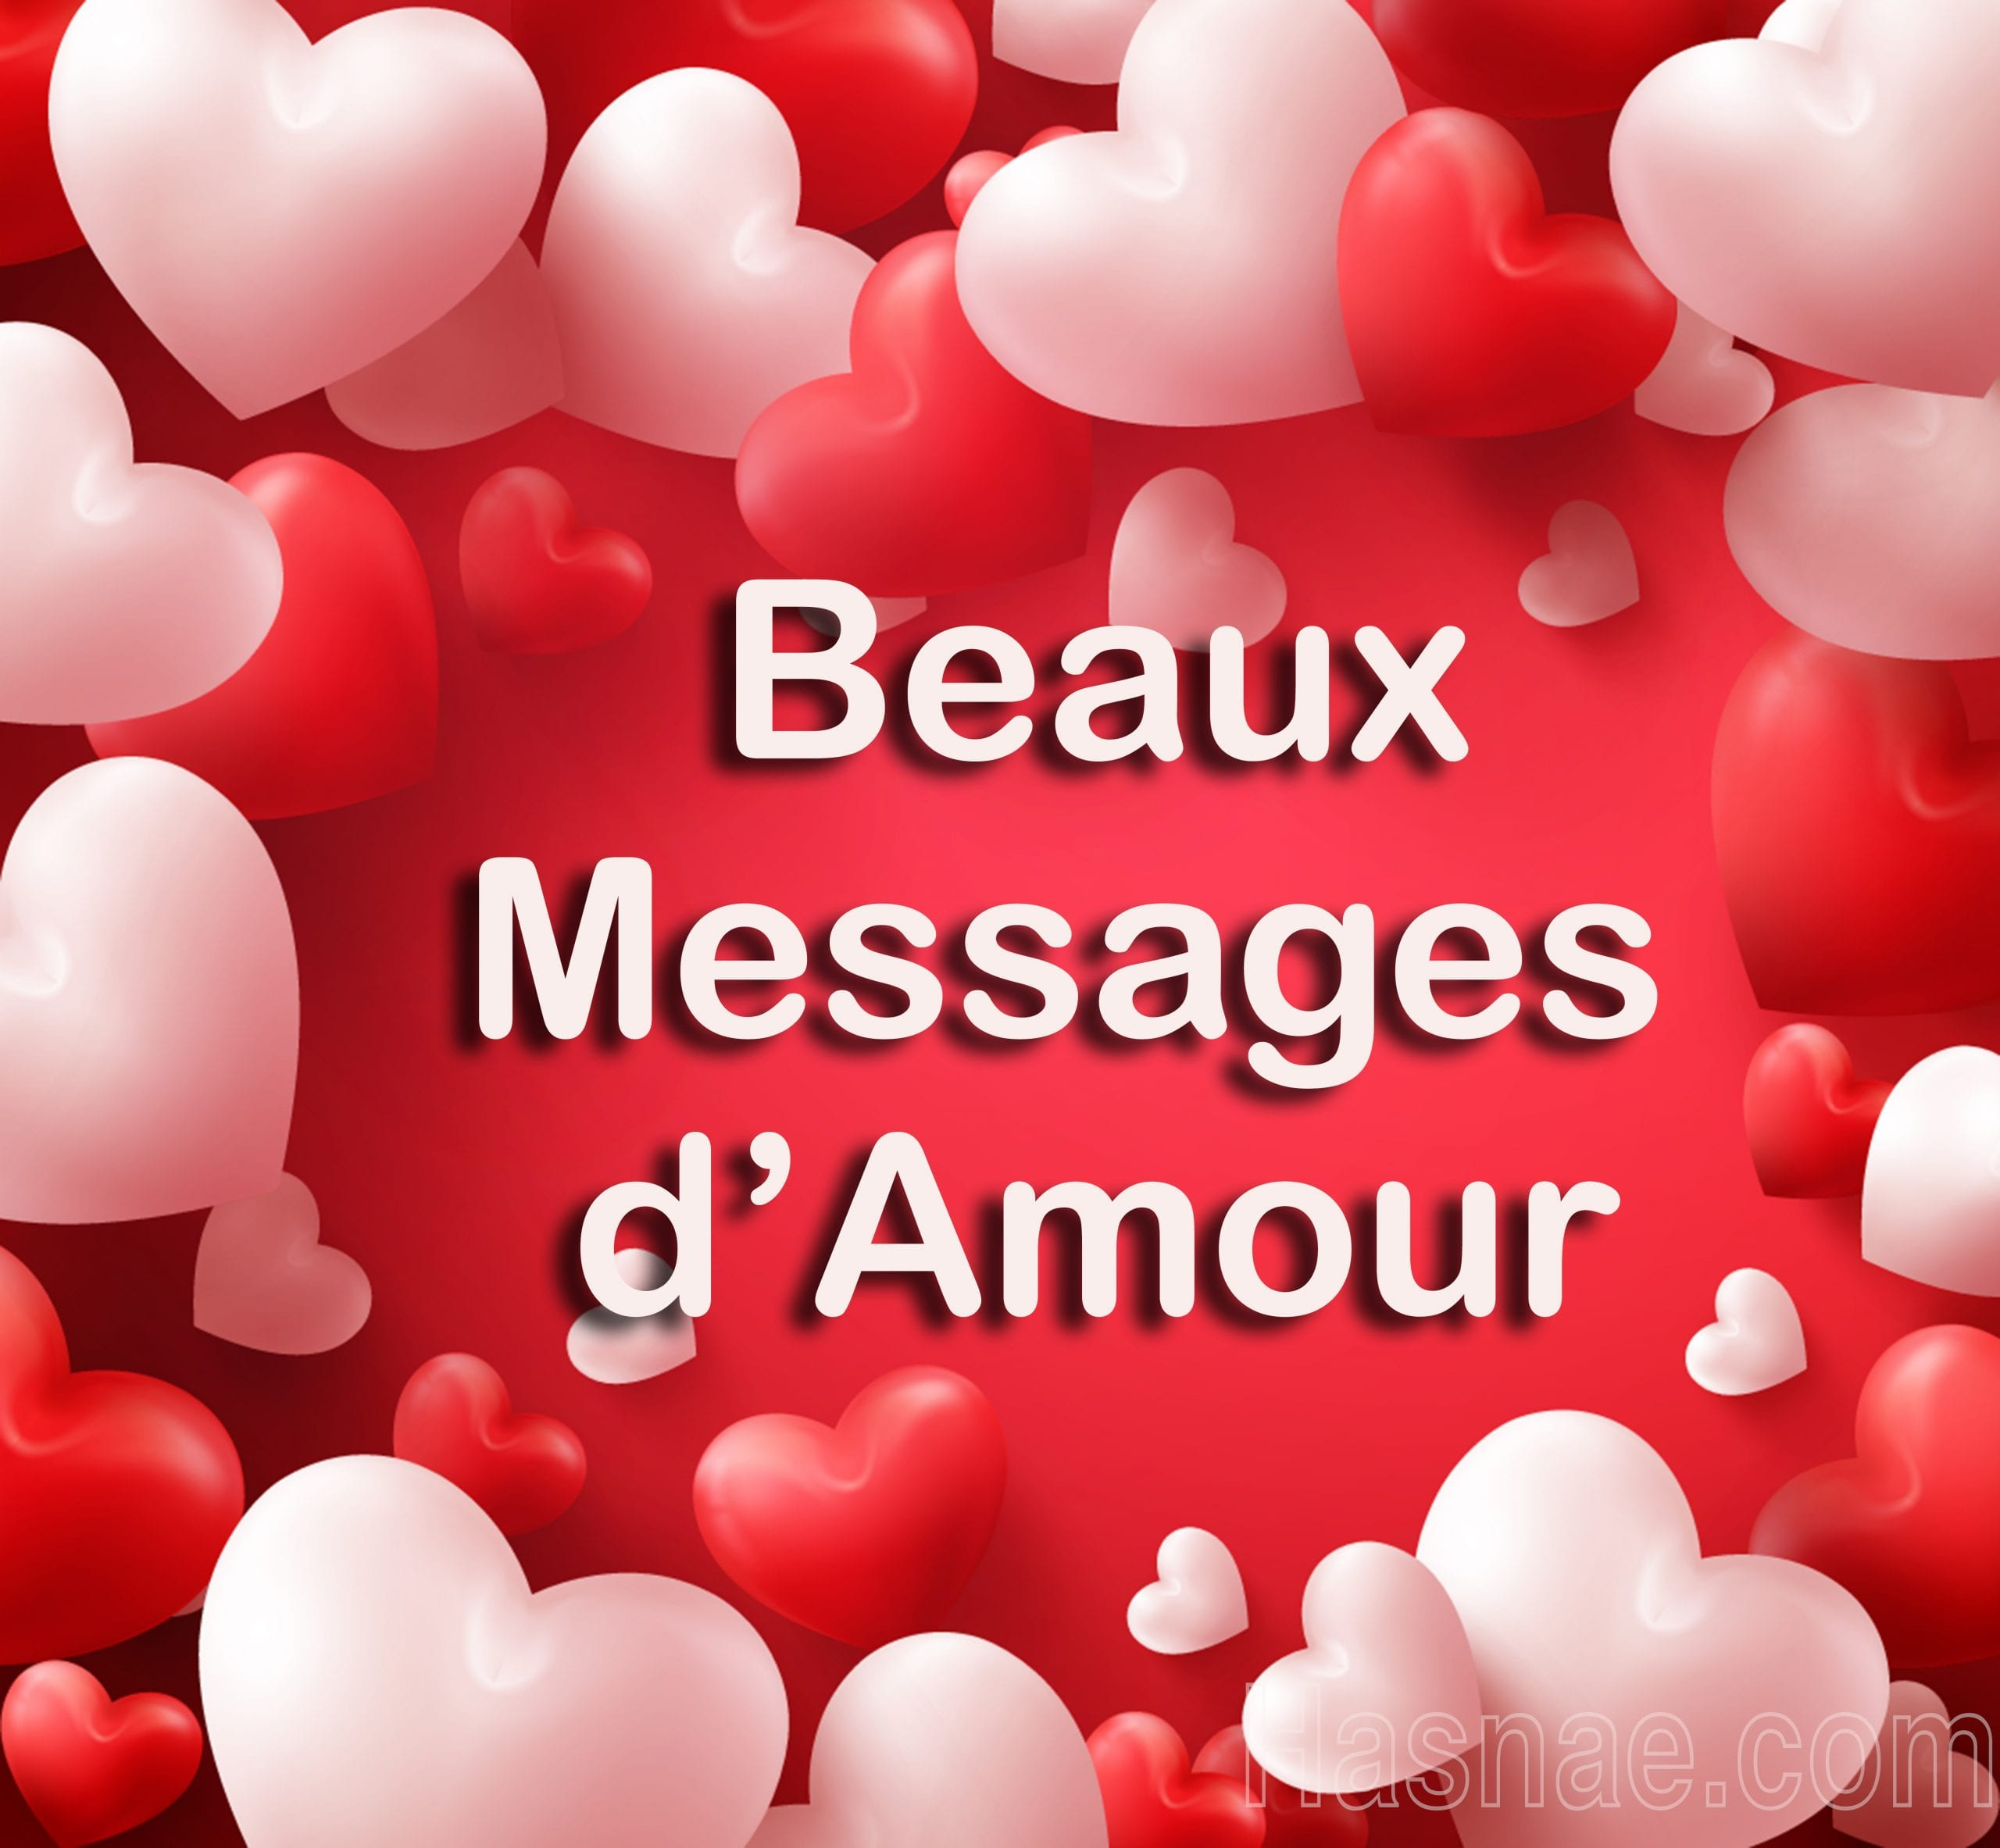 Saint valentin 2018 messages d 39 amour belles photos - Poeme d amour pour la saint valentin ...